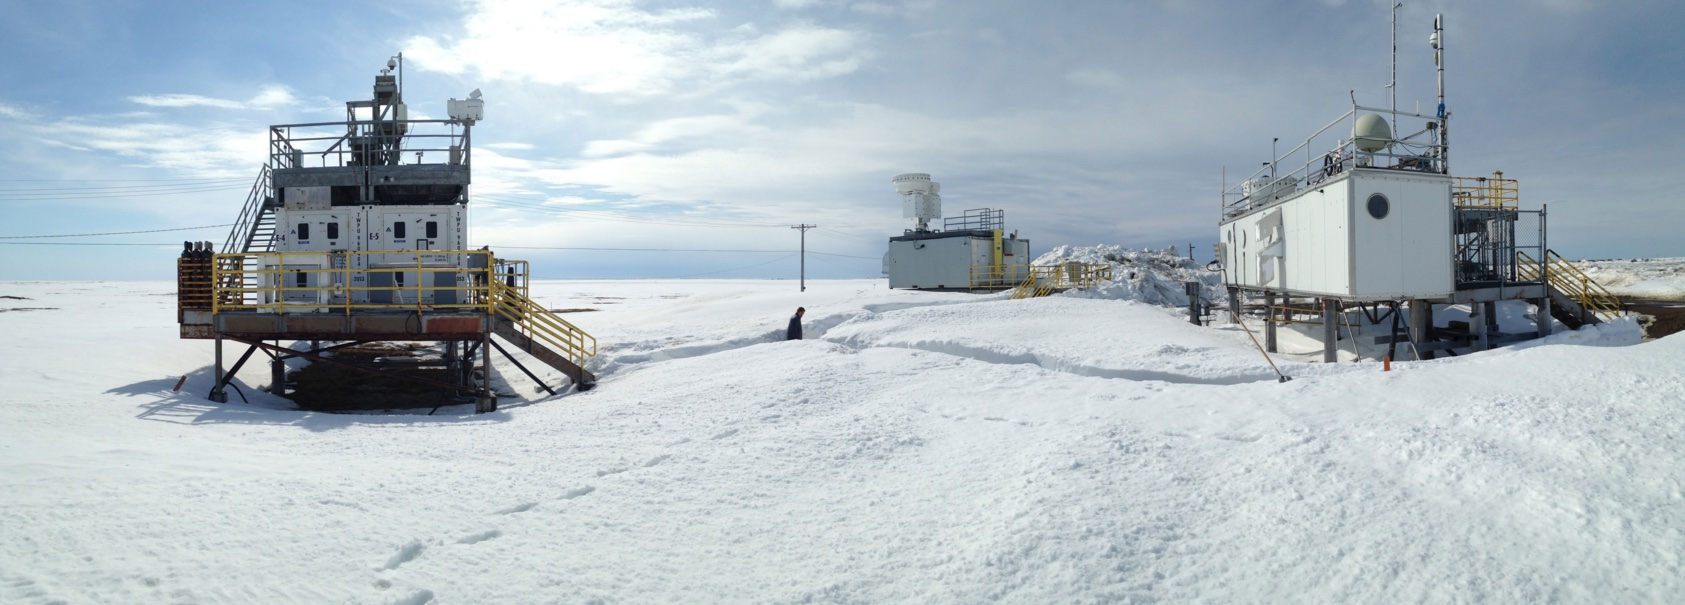 "Data collected at the Atmospheric Radiation Measurement (ARM) atmospheric observatory in Utqiagvik (Barrow), Alaska, indicate that shattering drizzle droplets play a major role in the formation of ""secondary"" ice in mixed-phase clouds. The results will improve how these cloud processes are represented in computational models used to forecast climate and local snowfall. (Credit: ARM user facility)"